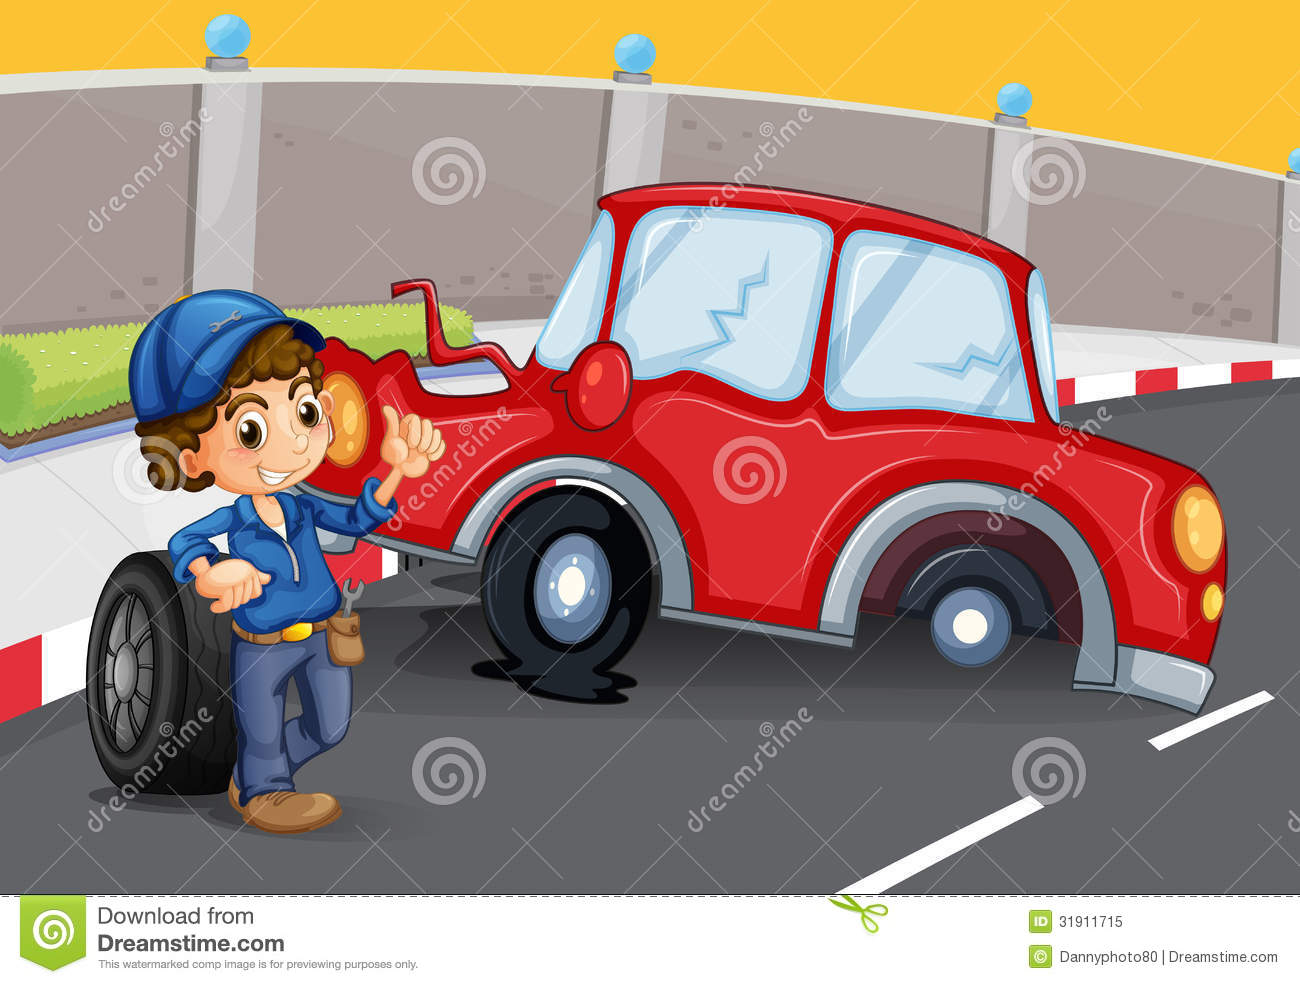 A Boy Near The Car Accident At The Road Stock Vector - Illustration ...